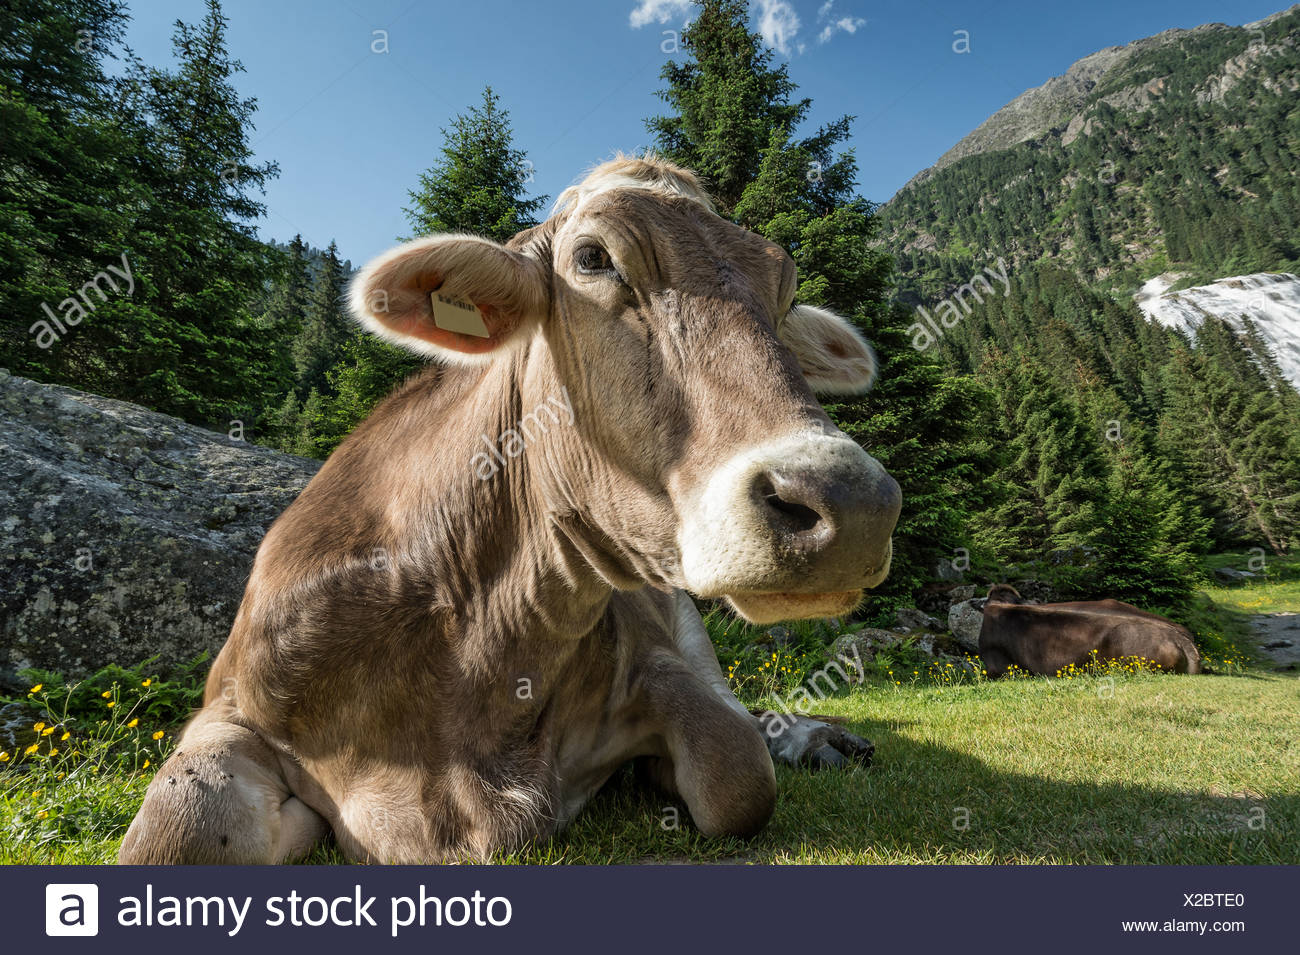 Tyrolean Brown Cattle, cow without horns ruminating, Grawa Alm, mountain pasture, Stubai Valley, Tyrol, Austria, Europe - Stock Image